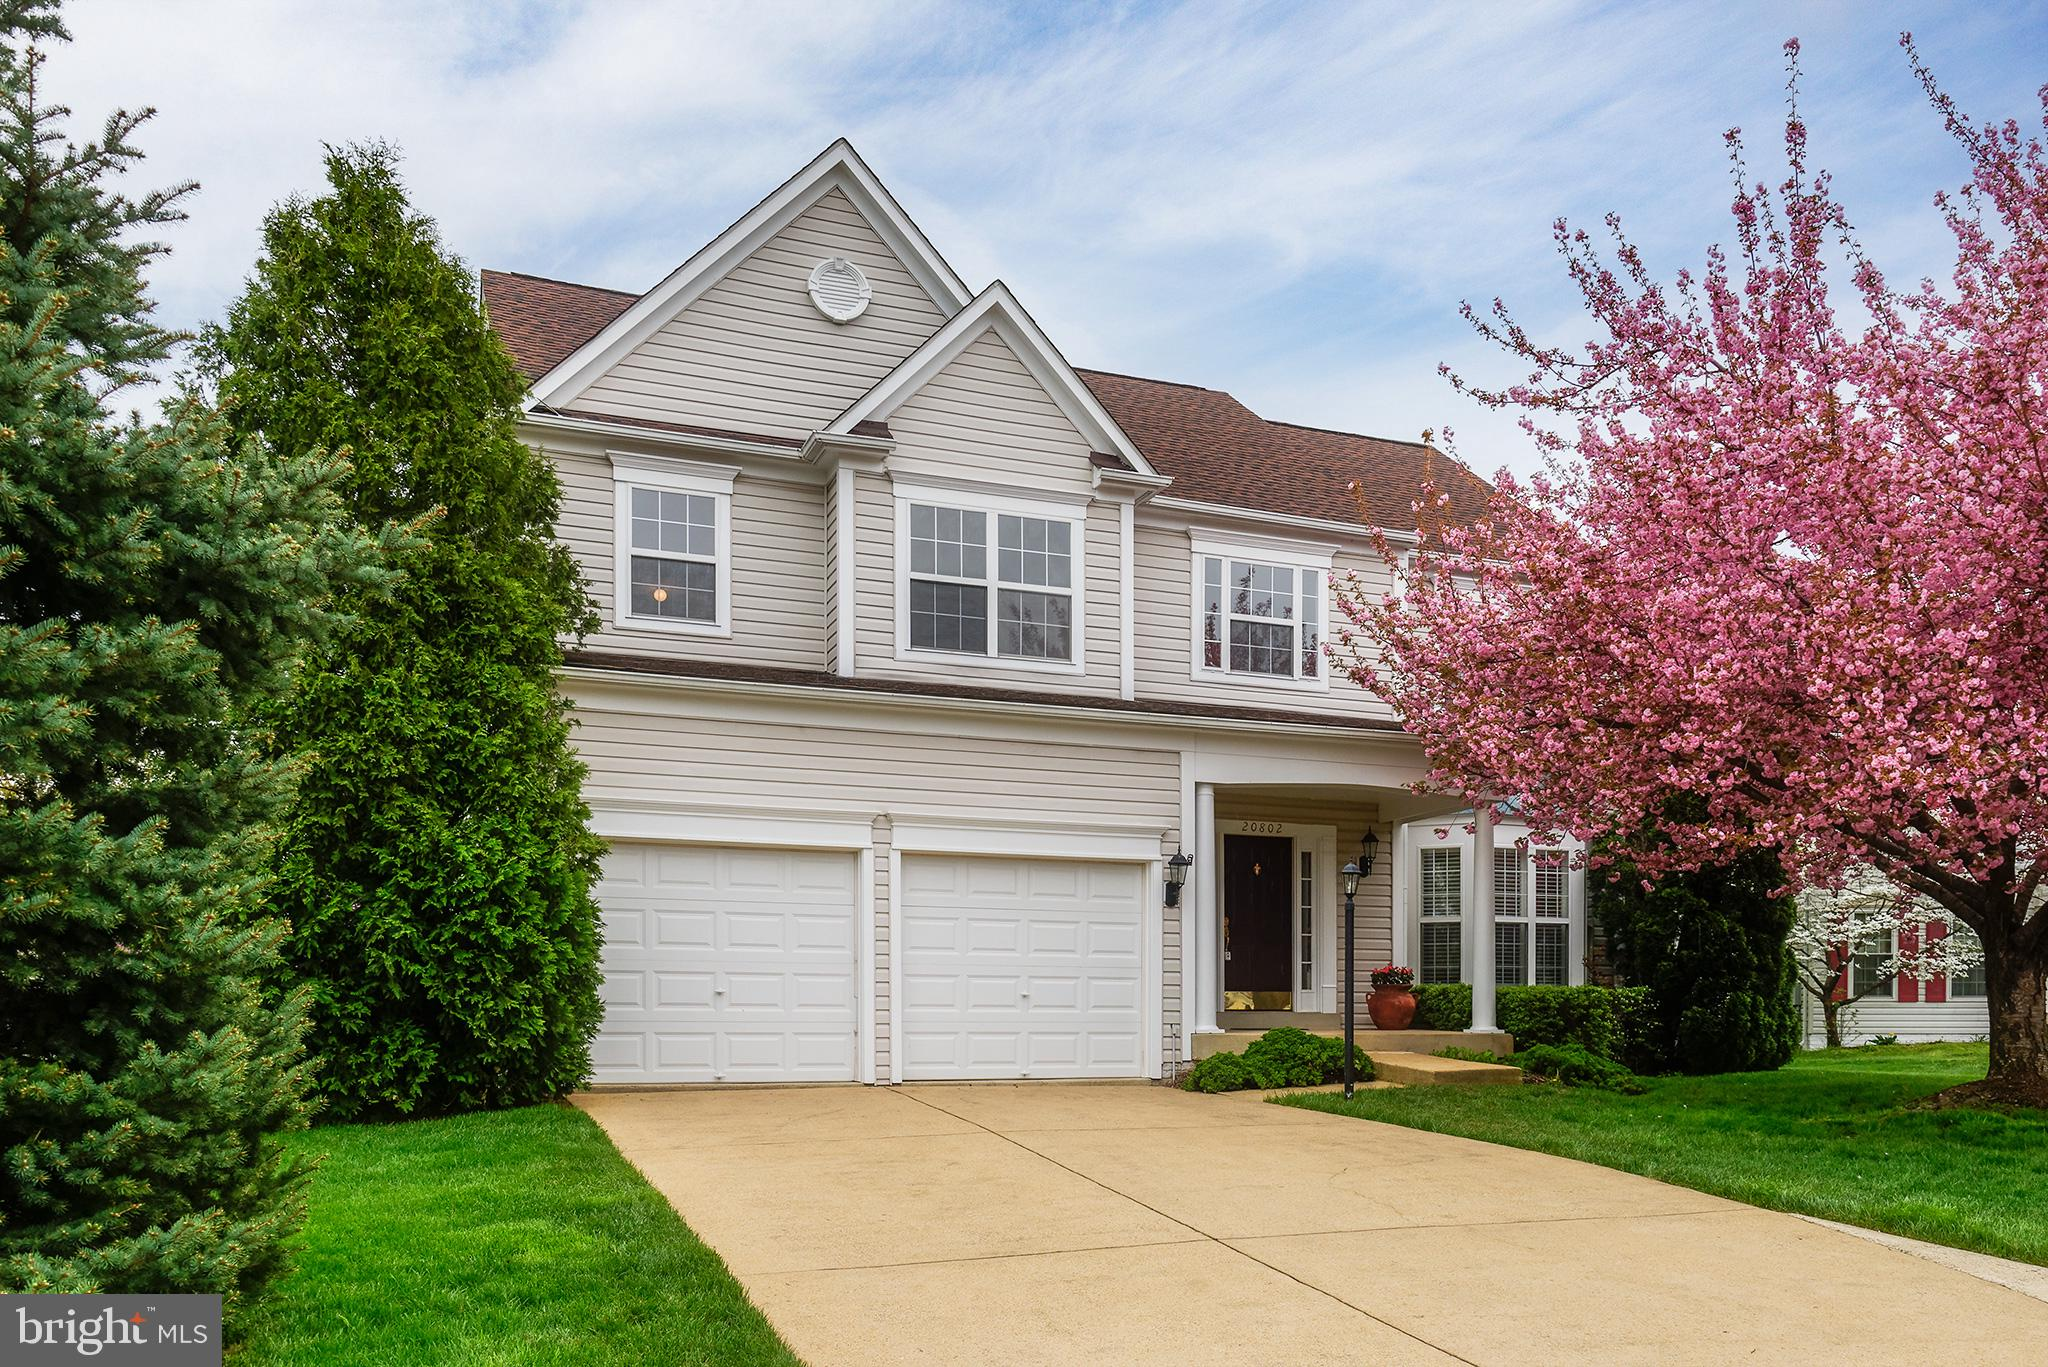 Amazing Cul-d-sac Home in Ashburn Village!  4 BR, 2.5 BA, 2 Car Garage w/ over 3100 Sq Ft Living Are